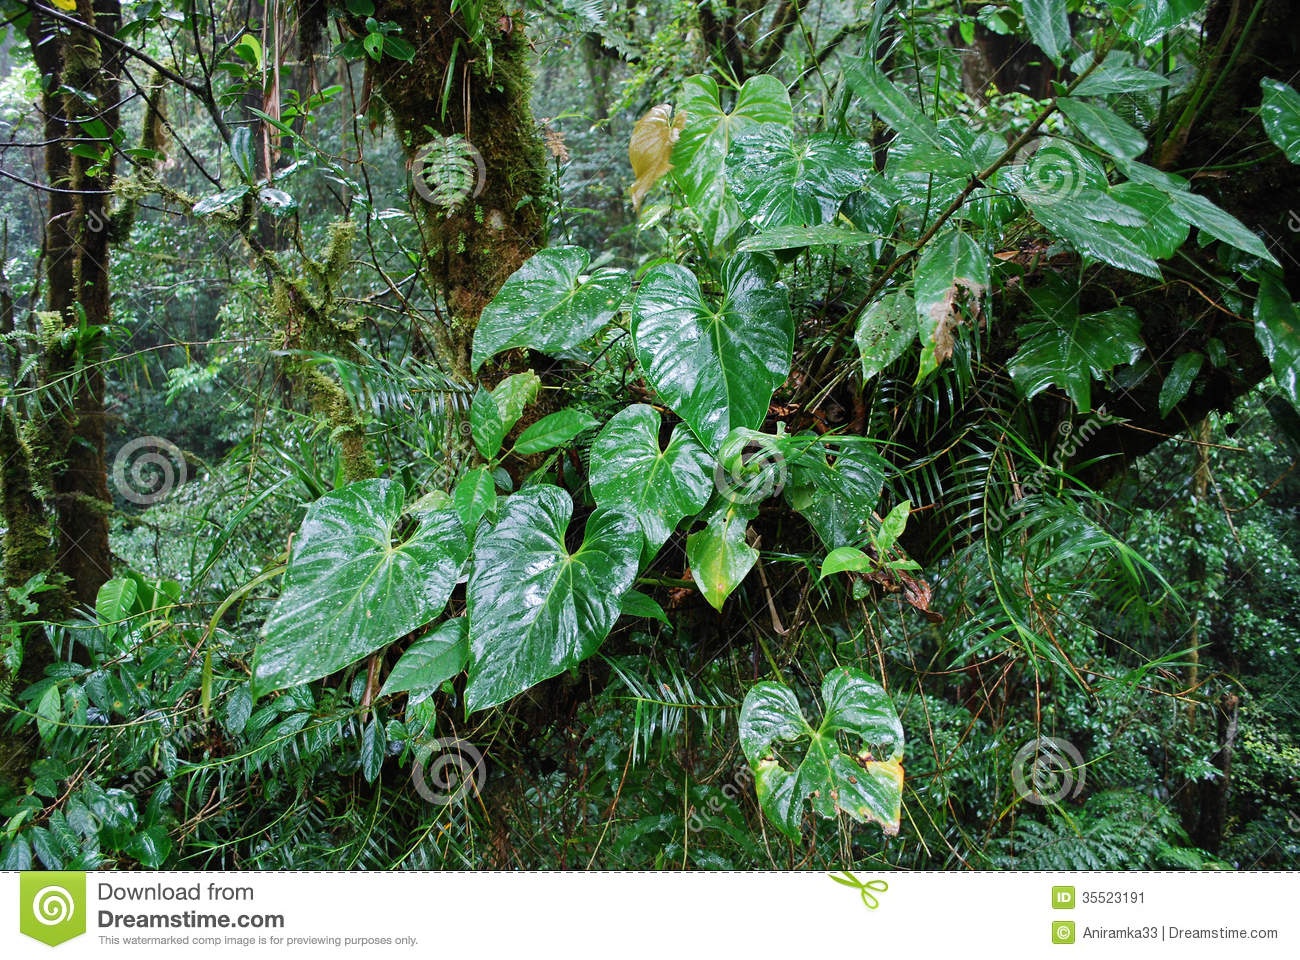 Rainforest plants, Monteverde National Park, Costa Rica.